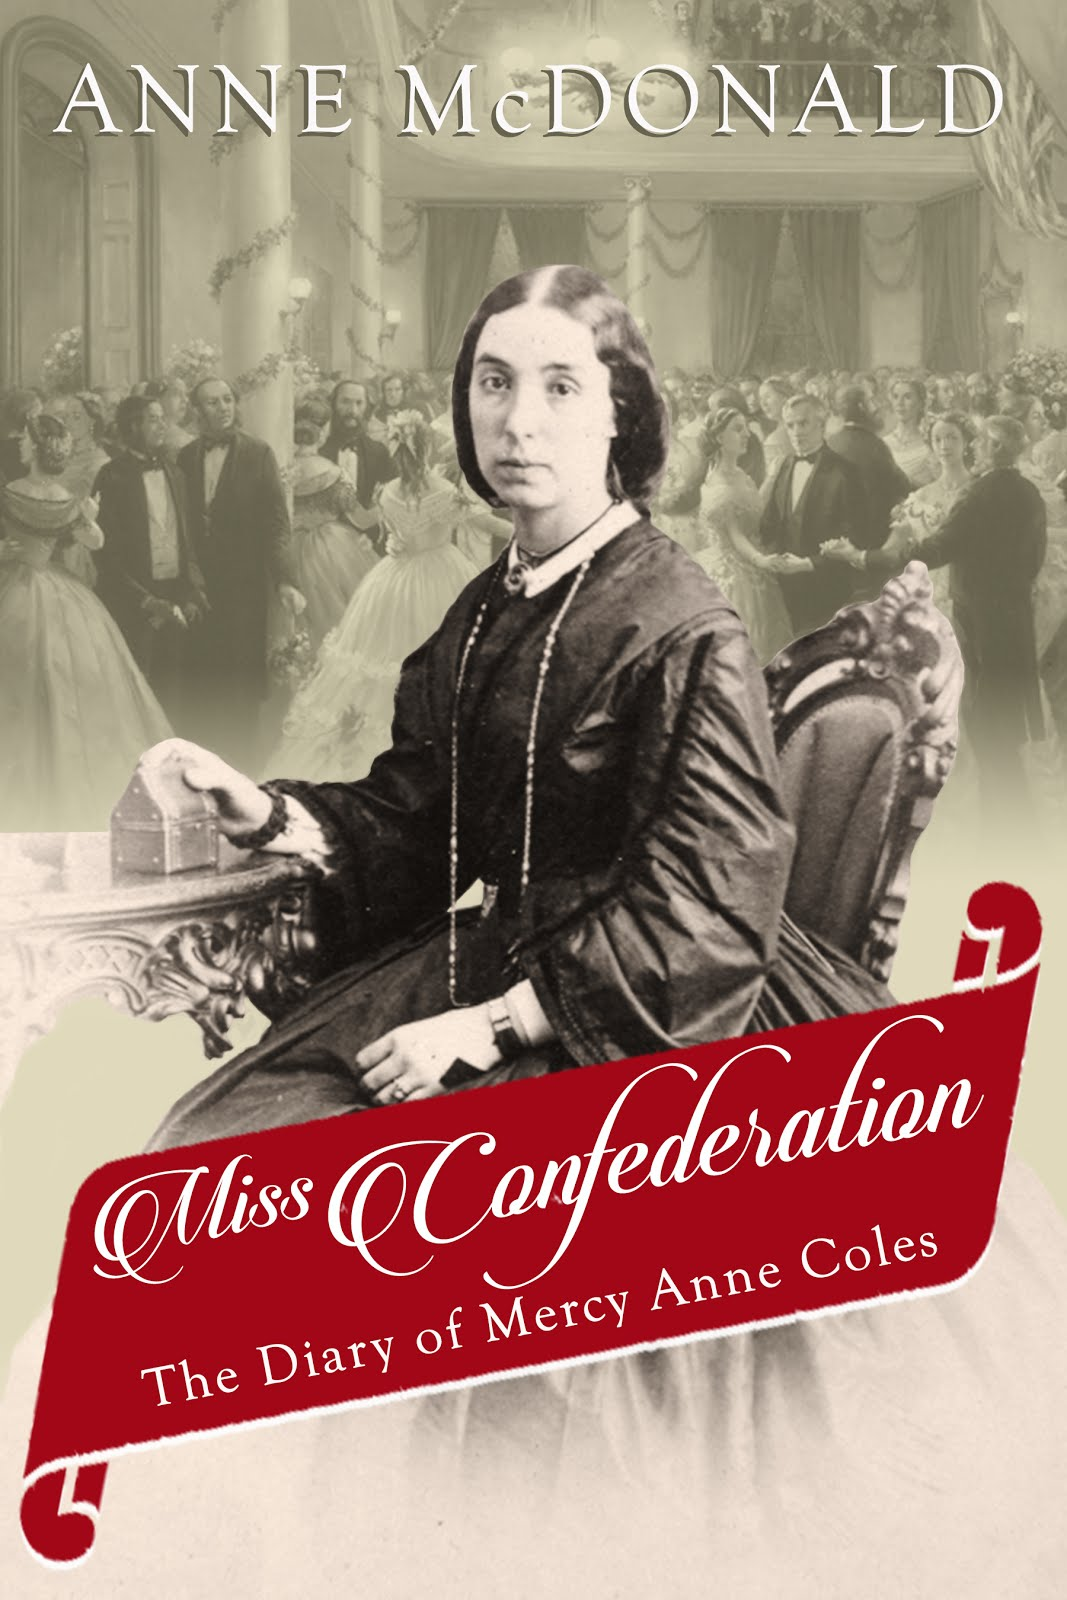 Miss Confederaton: The Diary of Mercy Anne Coles